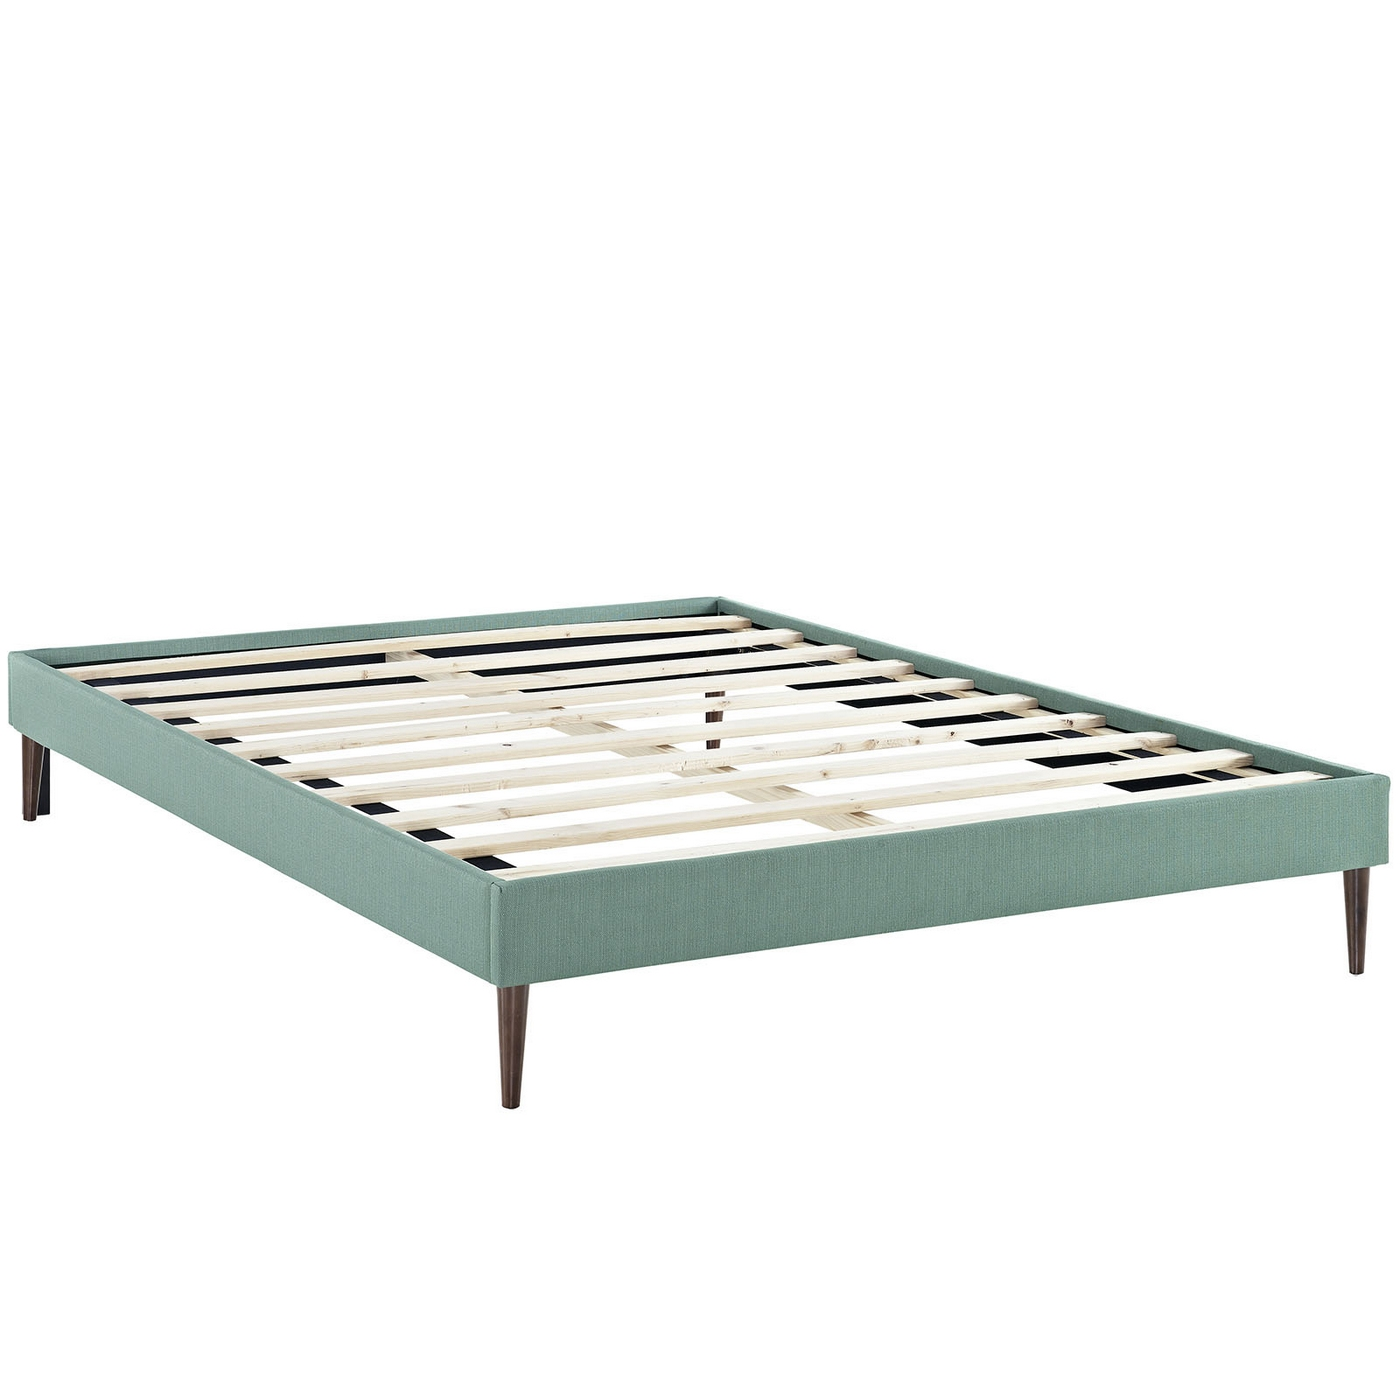 Sherry upholstered fabric queen platform bed frame laguna for Queen bed frame